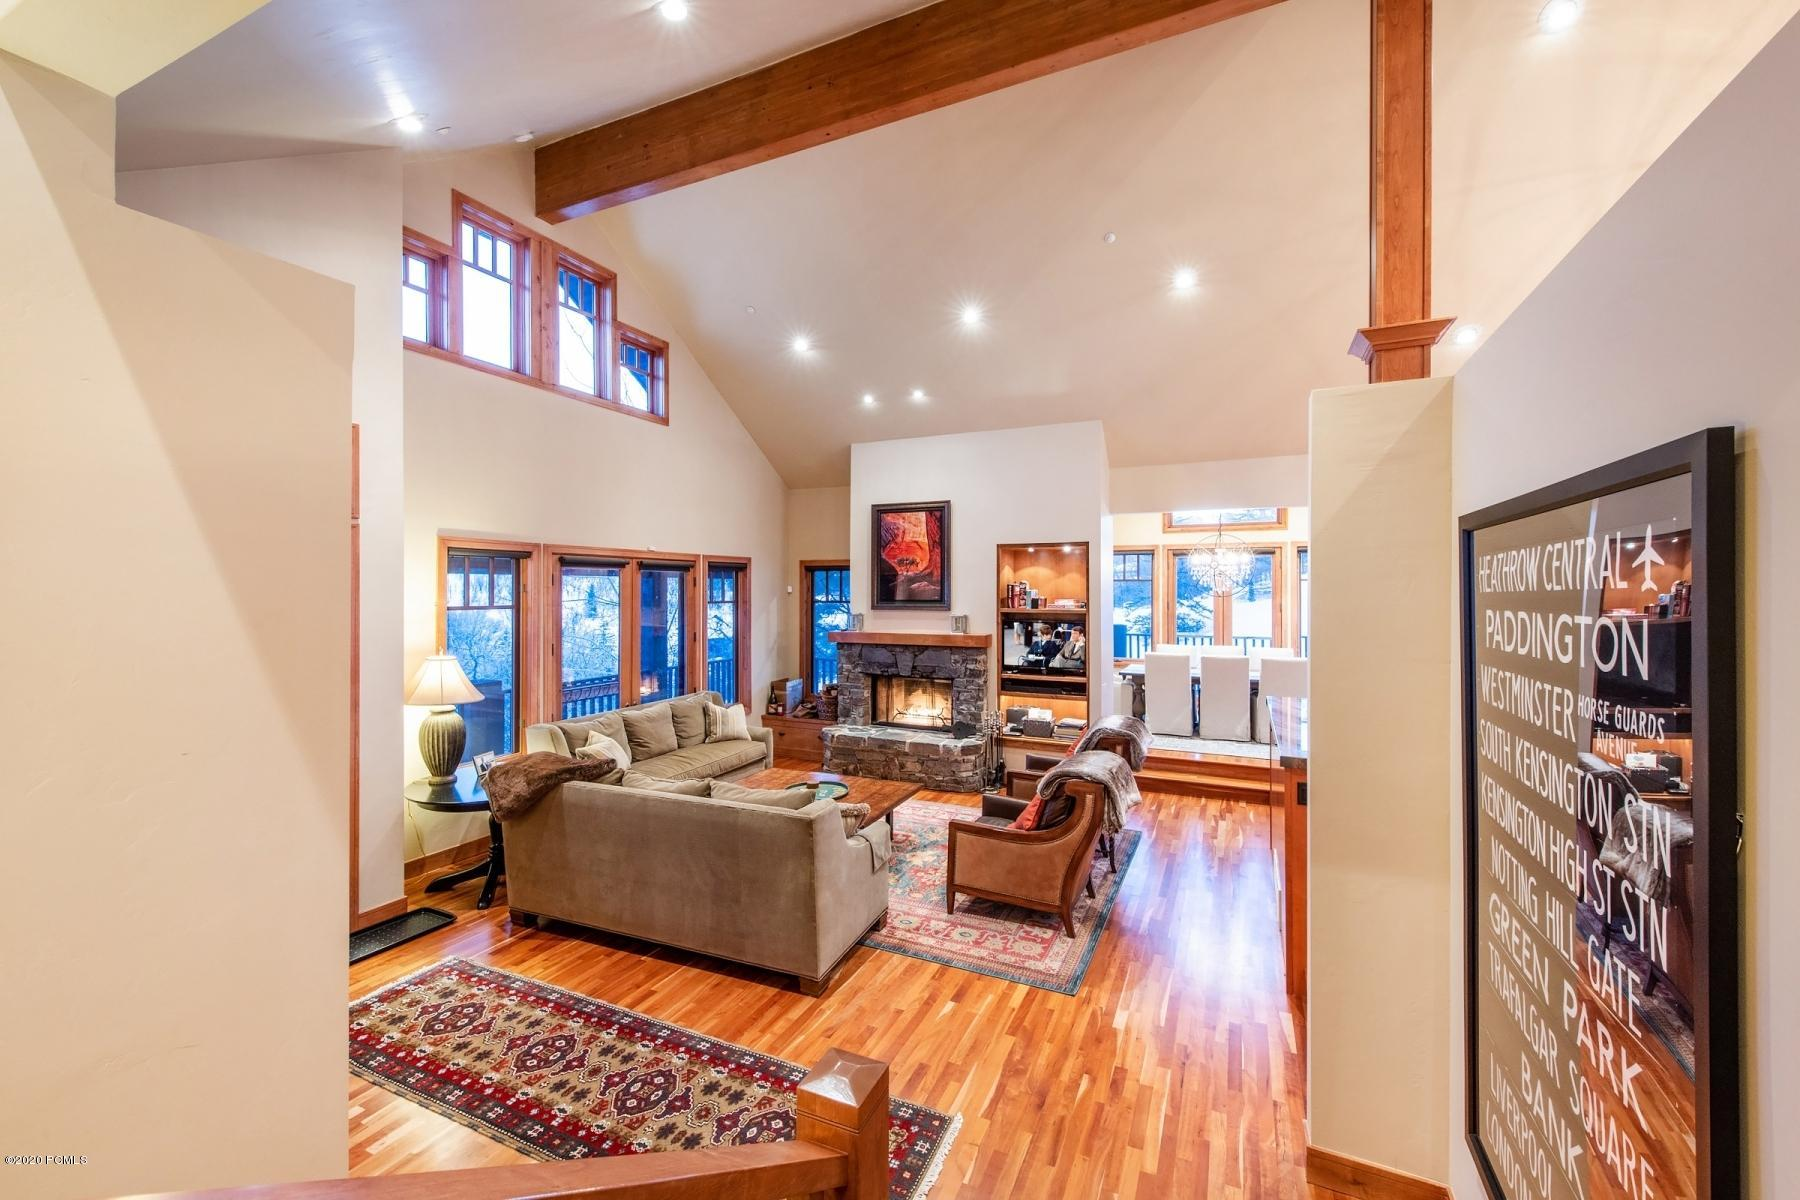 3781 Fox Tail Trail, Park City, Utah 84060, 4 Bedrooms Bedrooms, ,5 BathroomsBathrooms,Single Family,For Sale,Fox Tail,20190109112430415765000000